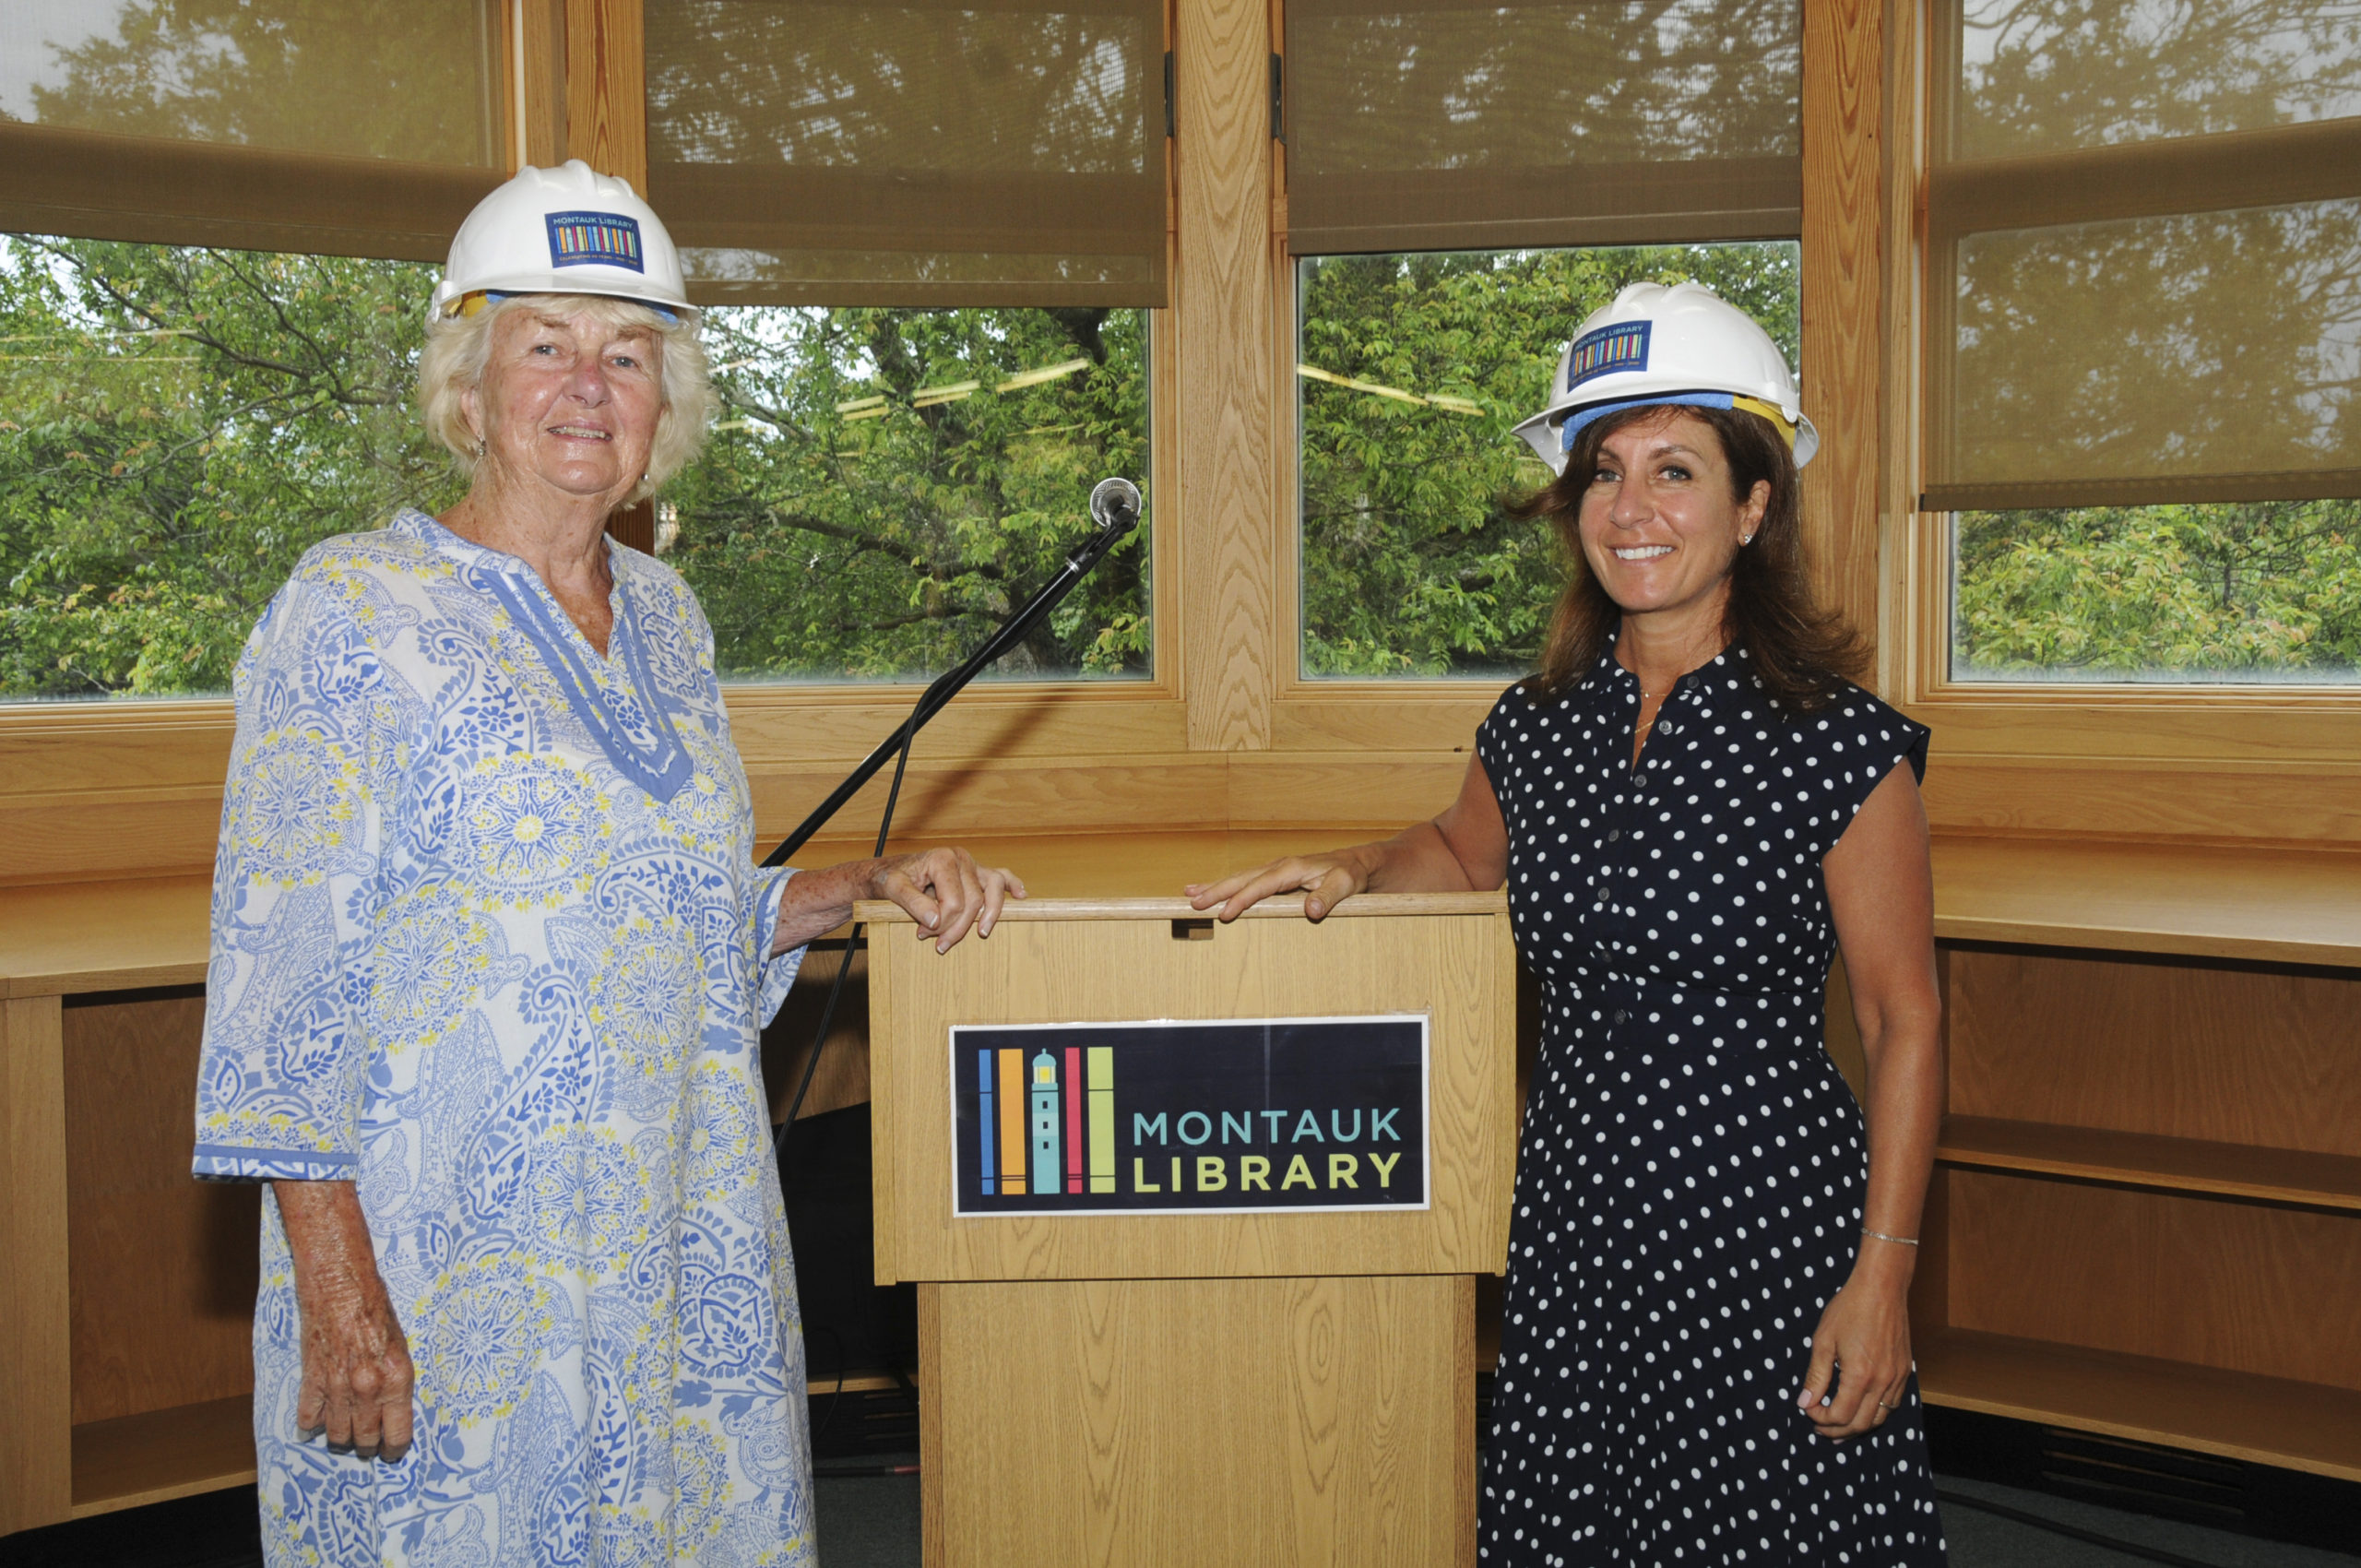 Montauk Library Board President Joan Lycke and Library Director Denise DiPaolo at the Montauk Library expansion and renovation building project groundbreaking ceremony on Friday, July 24. RICHARD LEWIN